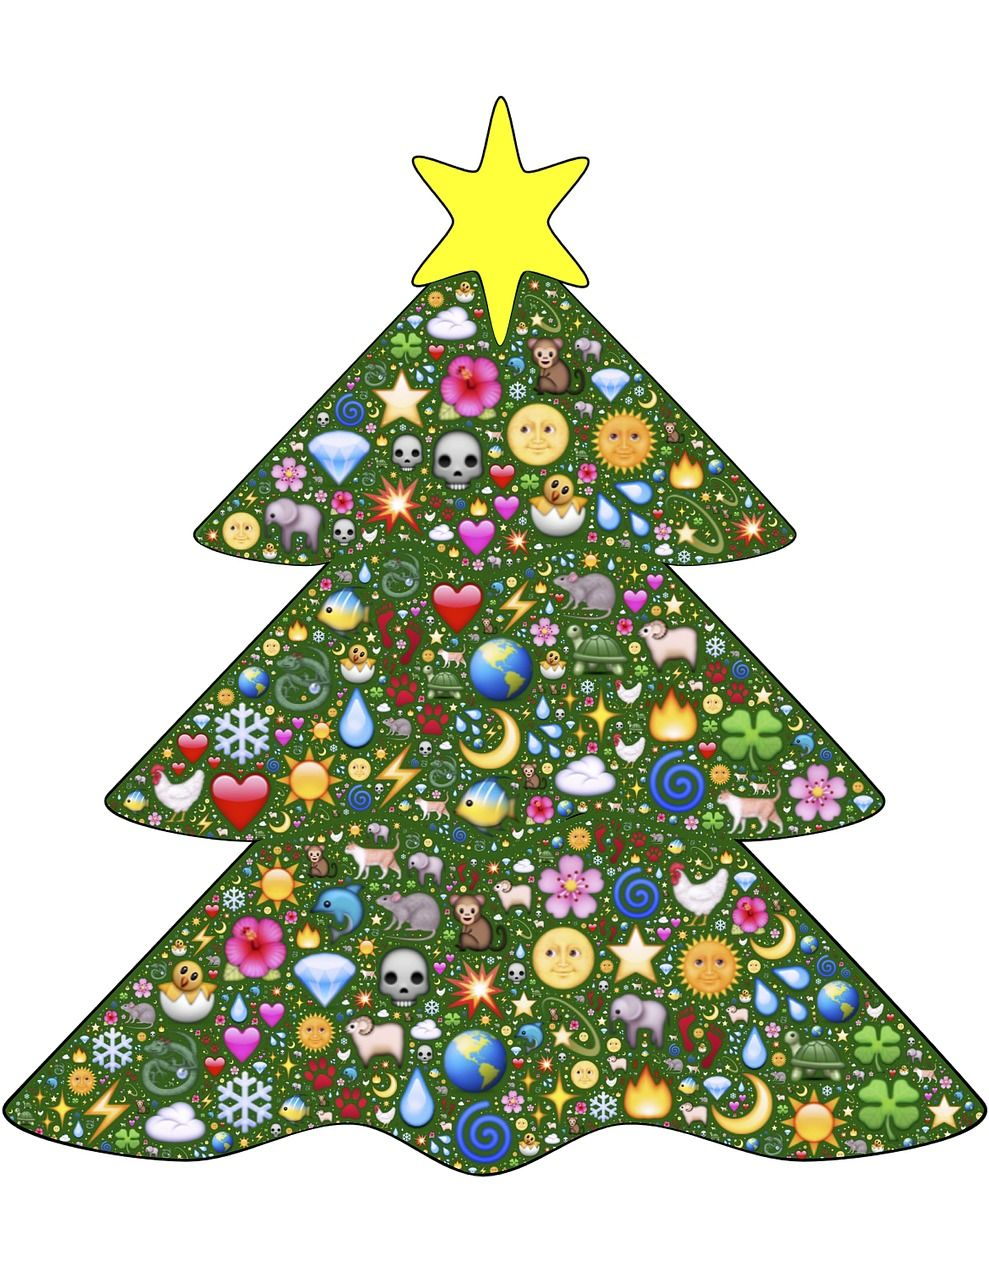 Vacation Christmas Tree Green Emoji Decoration Vacation Christmastree Green Emoji Decoration Unusual Christmas Trees Christmas Tree Christmas